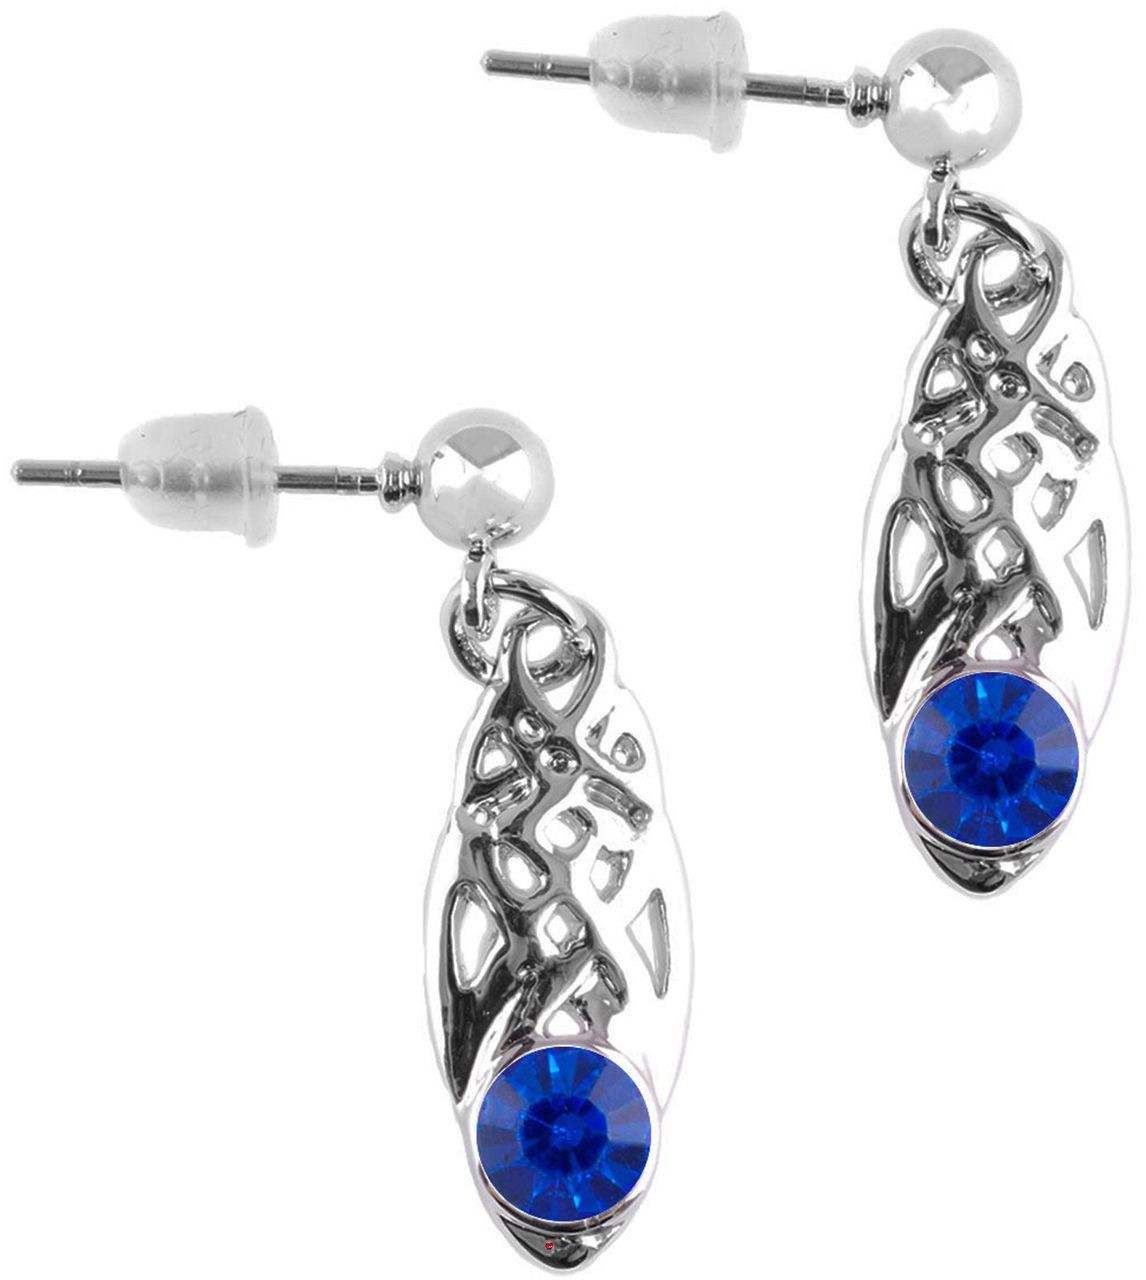 93bf63737 Celtic Birthstone Drop Earrings September Jewellery Silver Plated Blue  Stone Scottish Gift ...